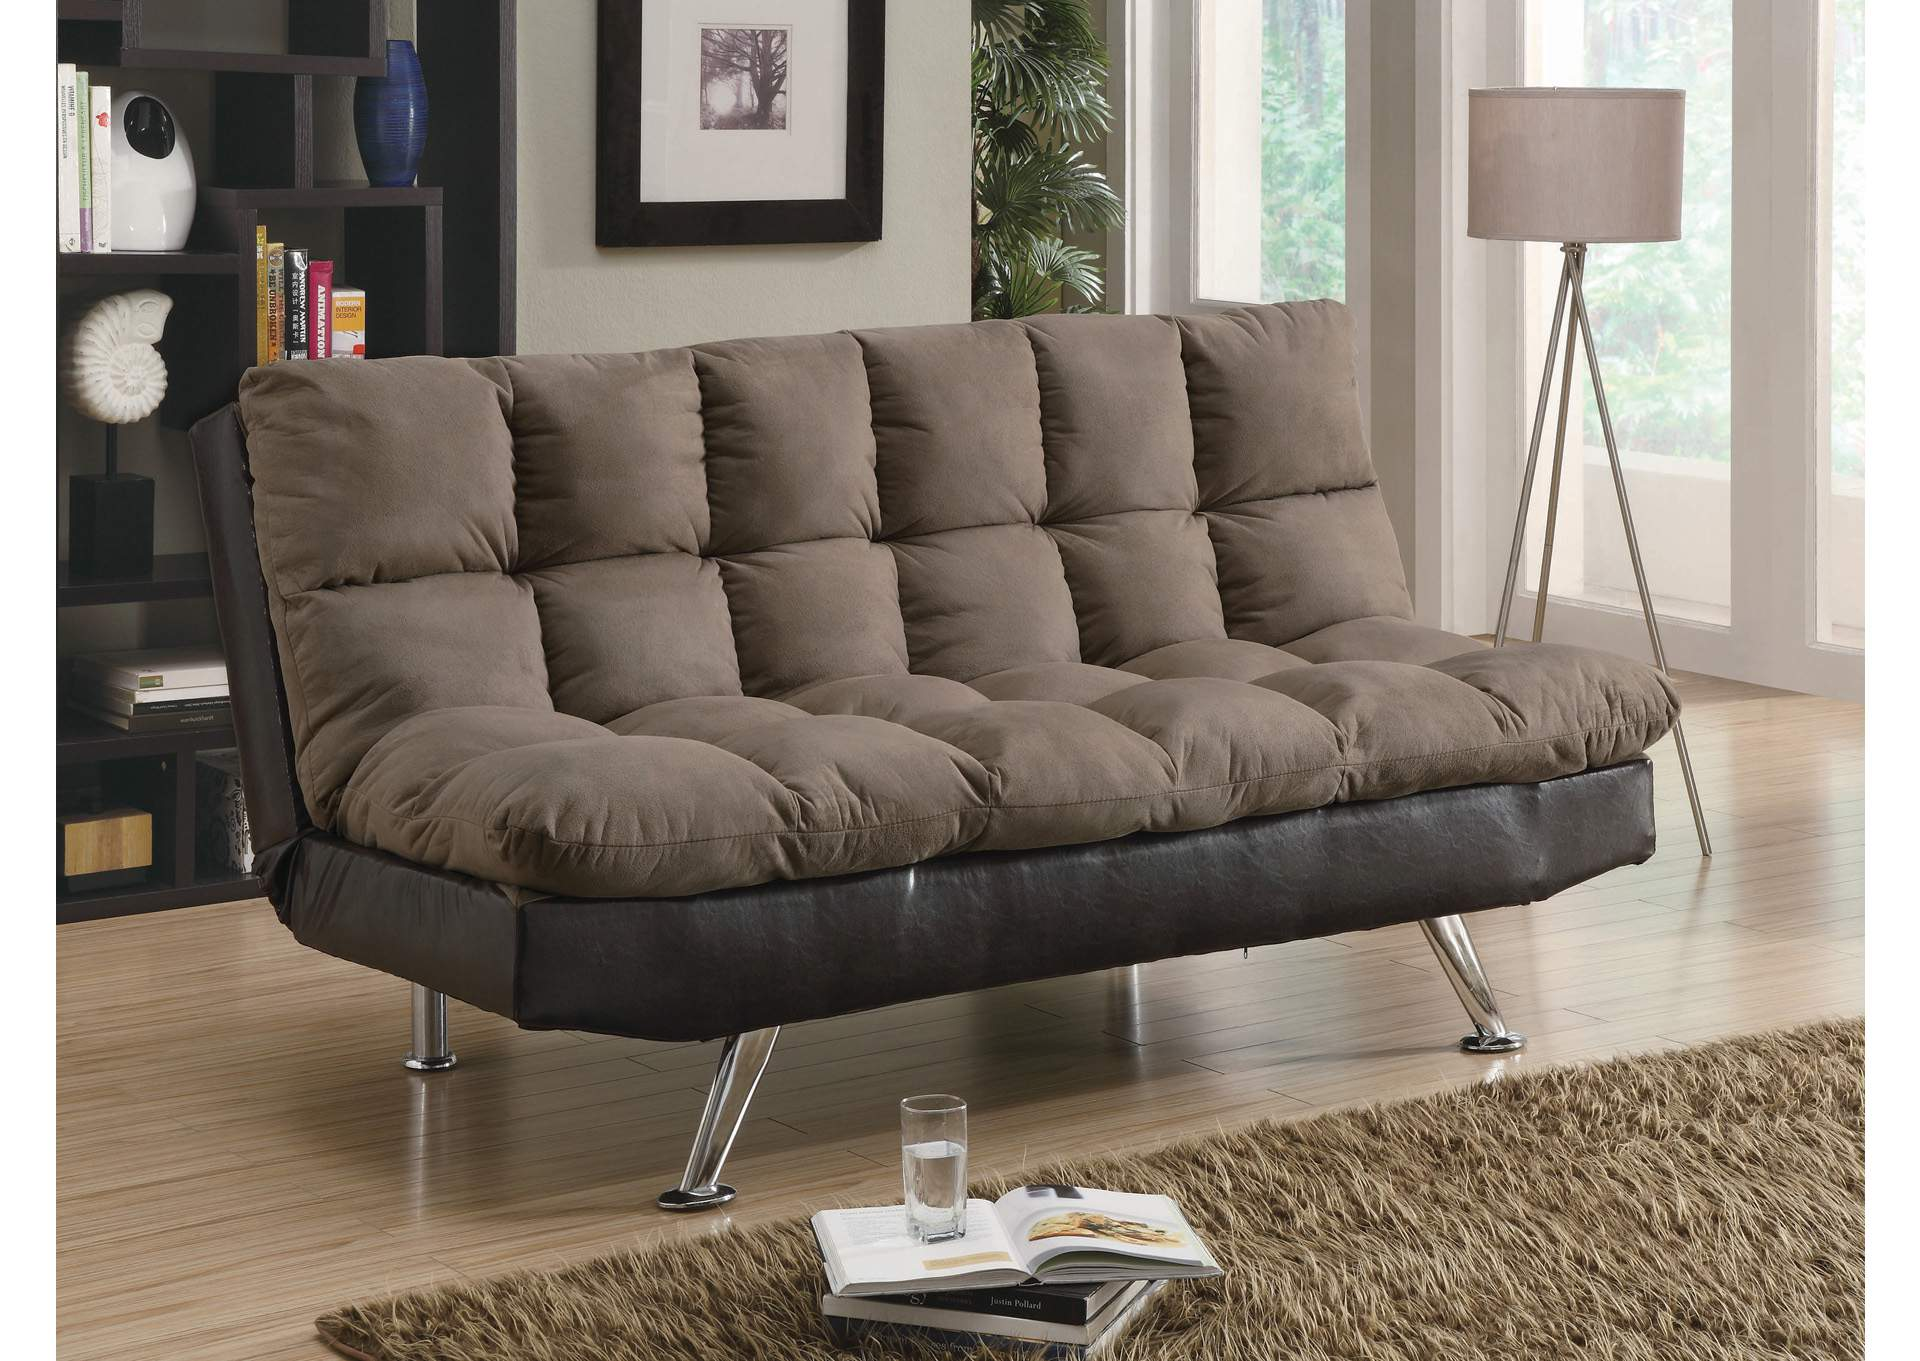 Surprising Amazing Furniture Taftville Ct Overstuffed Brown Sofa Bed Machost Co Dining Chair Design Ideas Machostcouk